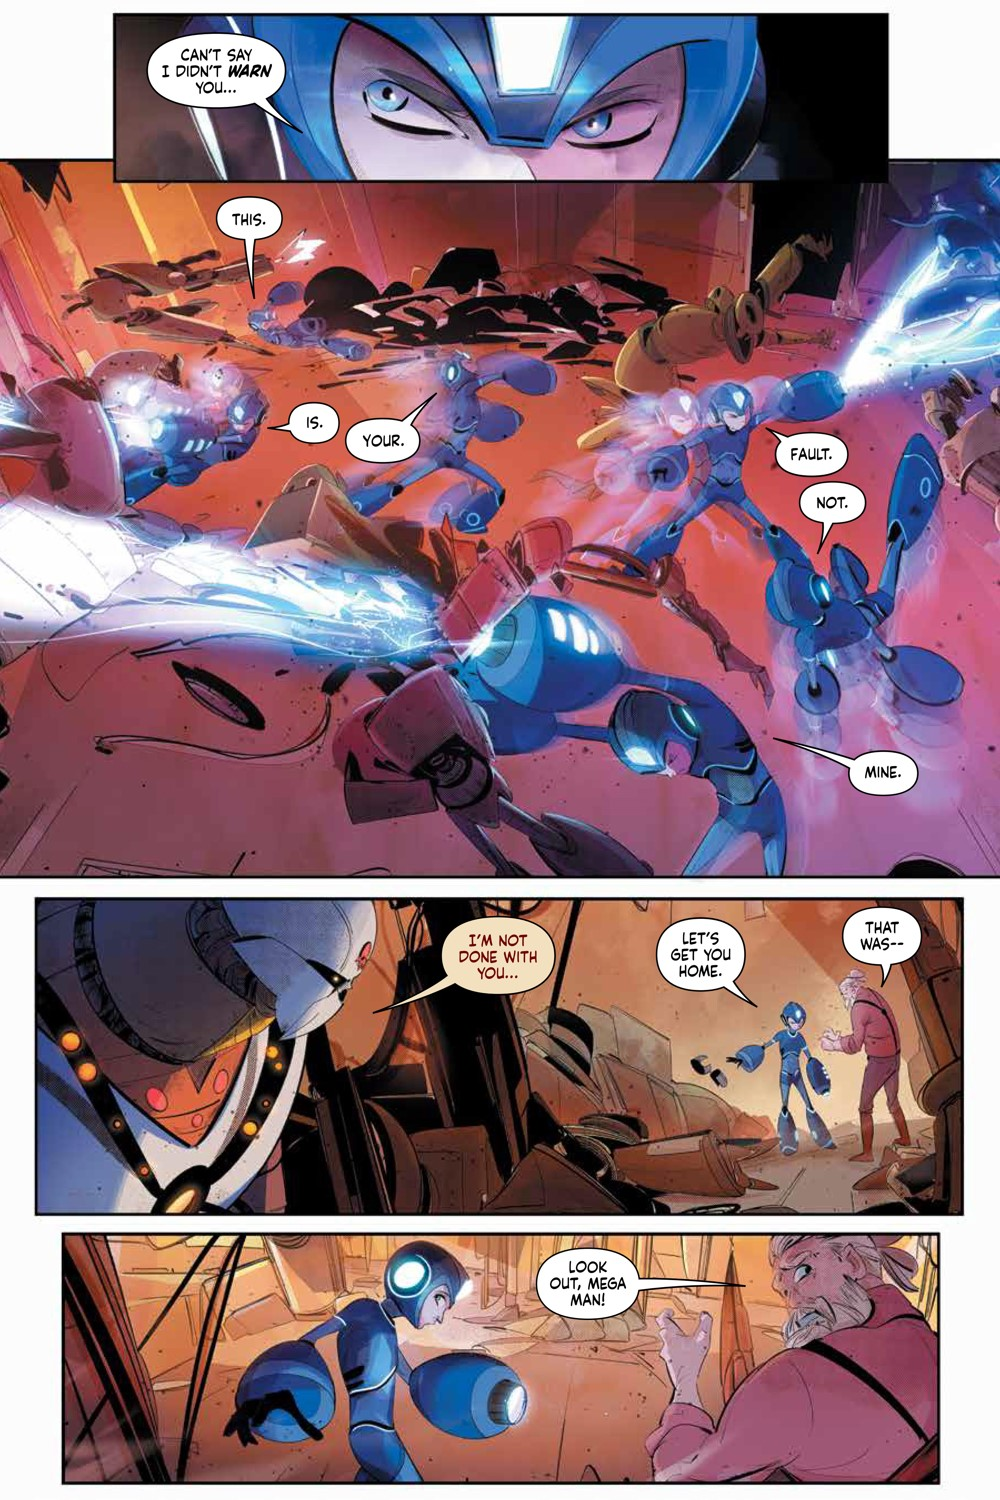 MegaMan_FullyCharged_SC_PRESS_17 ComicList Previews: MEGA MAN FULLY CHARGED TP